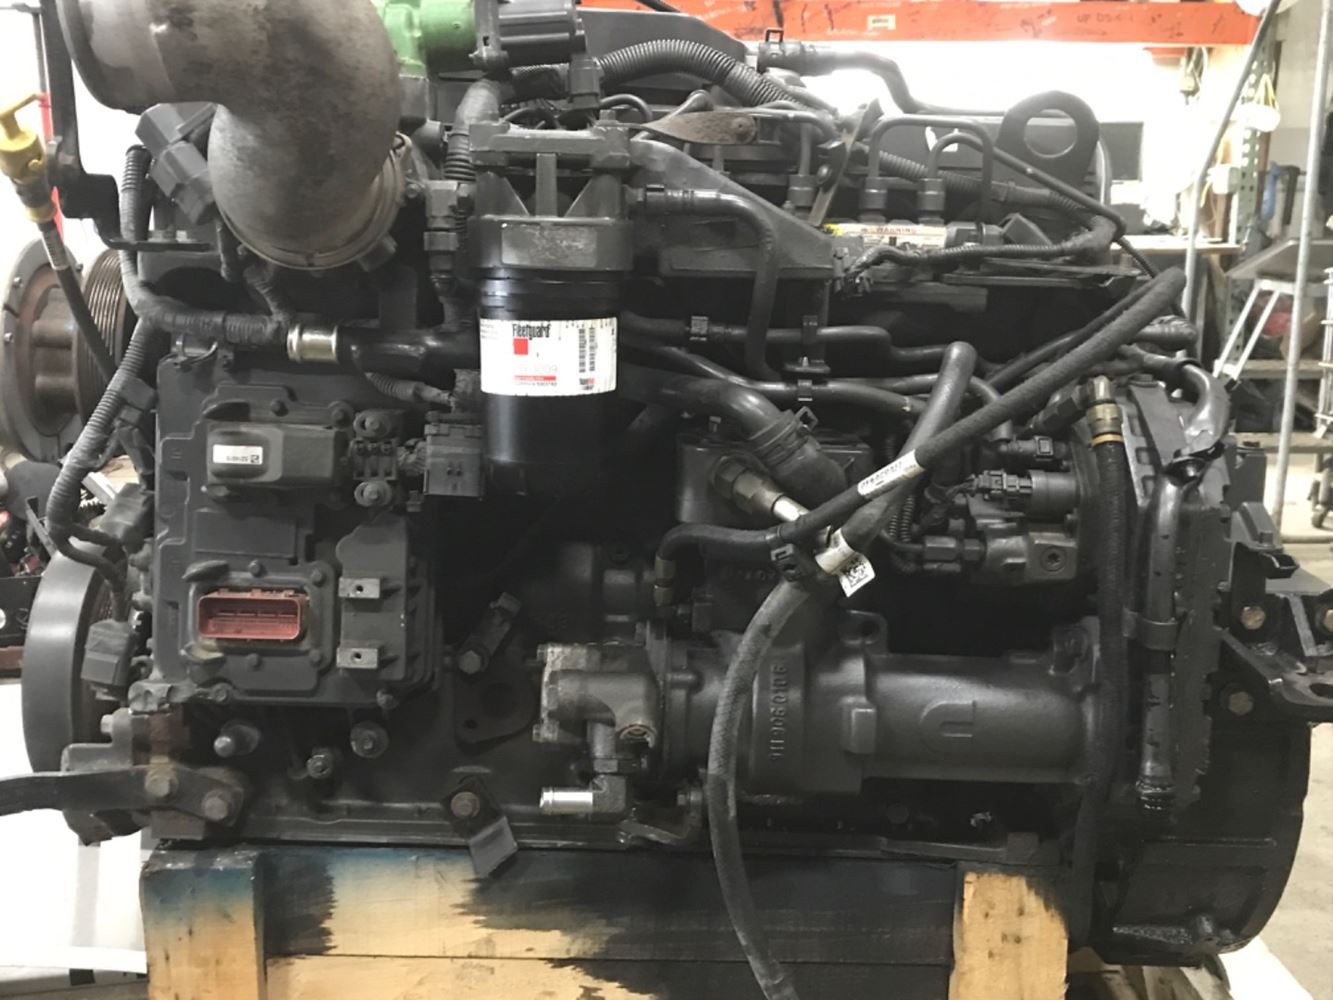 2015 PACCAR PX-7 ENGINE ASSEMBLY TRUCK PARTS #708192